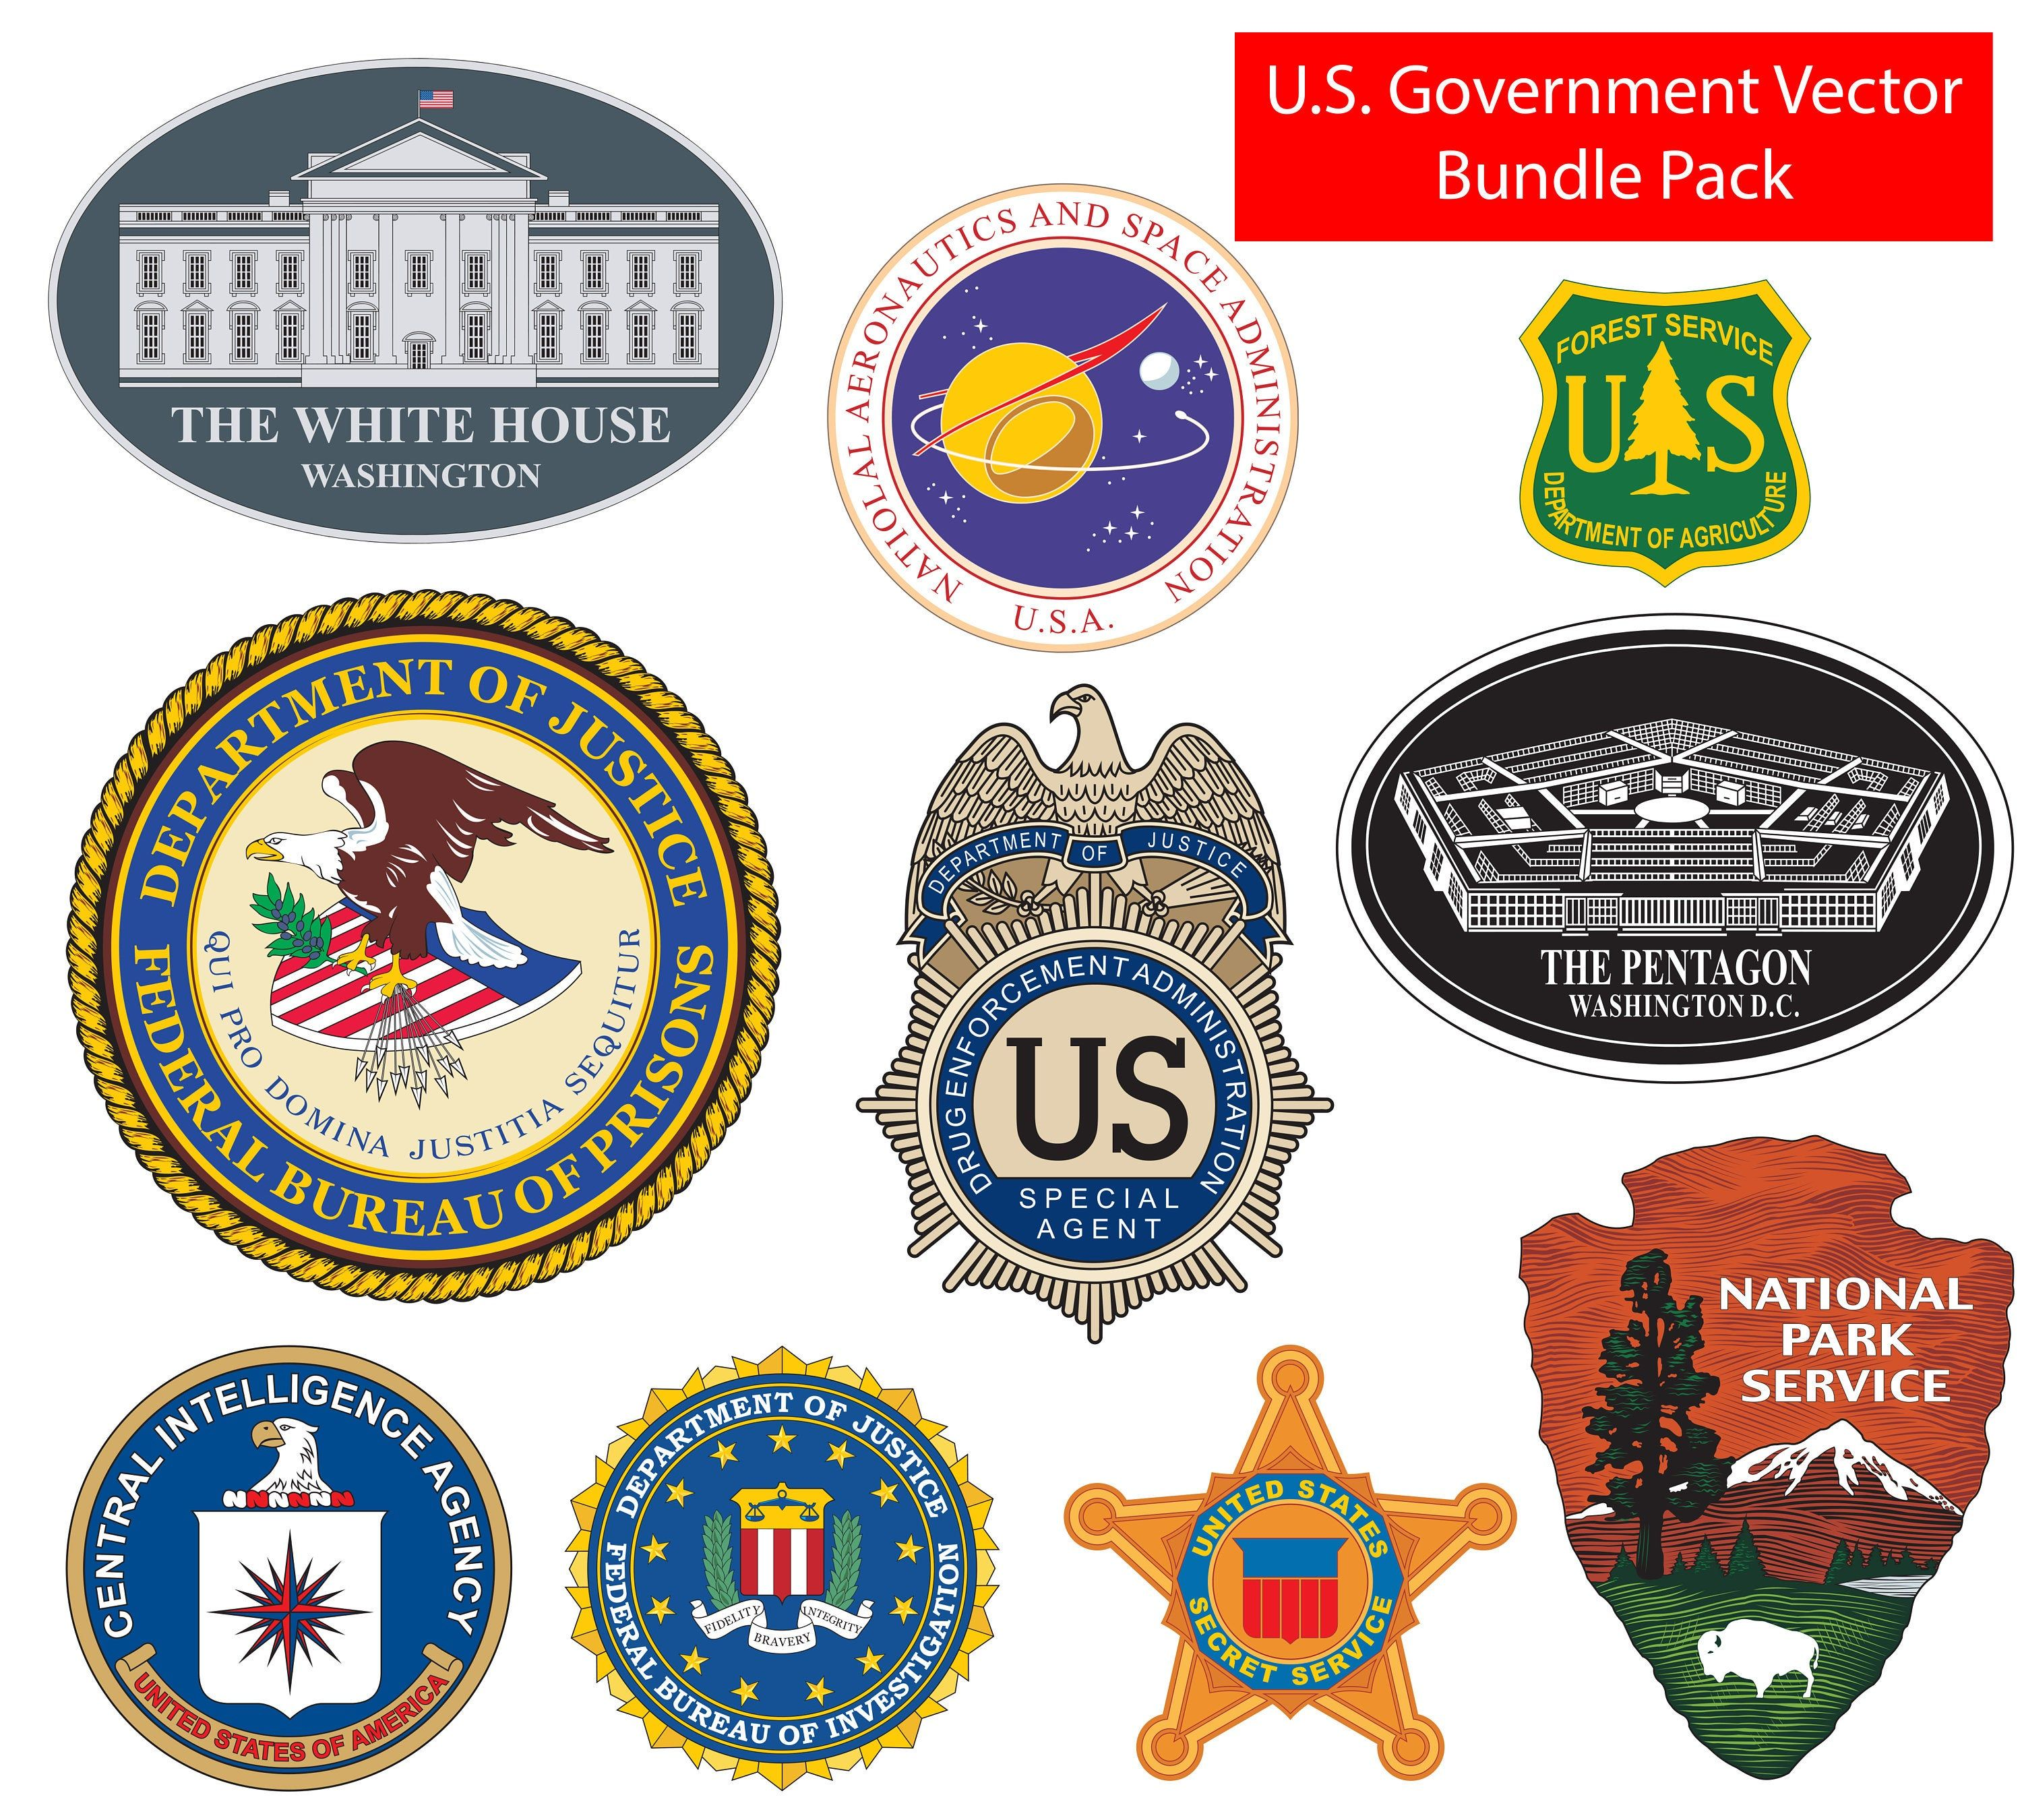 Over 80 U S Government Bureaus Agencies And Departments Seals Emblems Insignia Vector Files Government Eps Svg Bundle Pack Postal Service Logo Federal